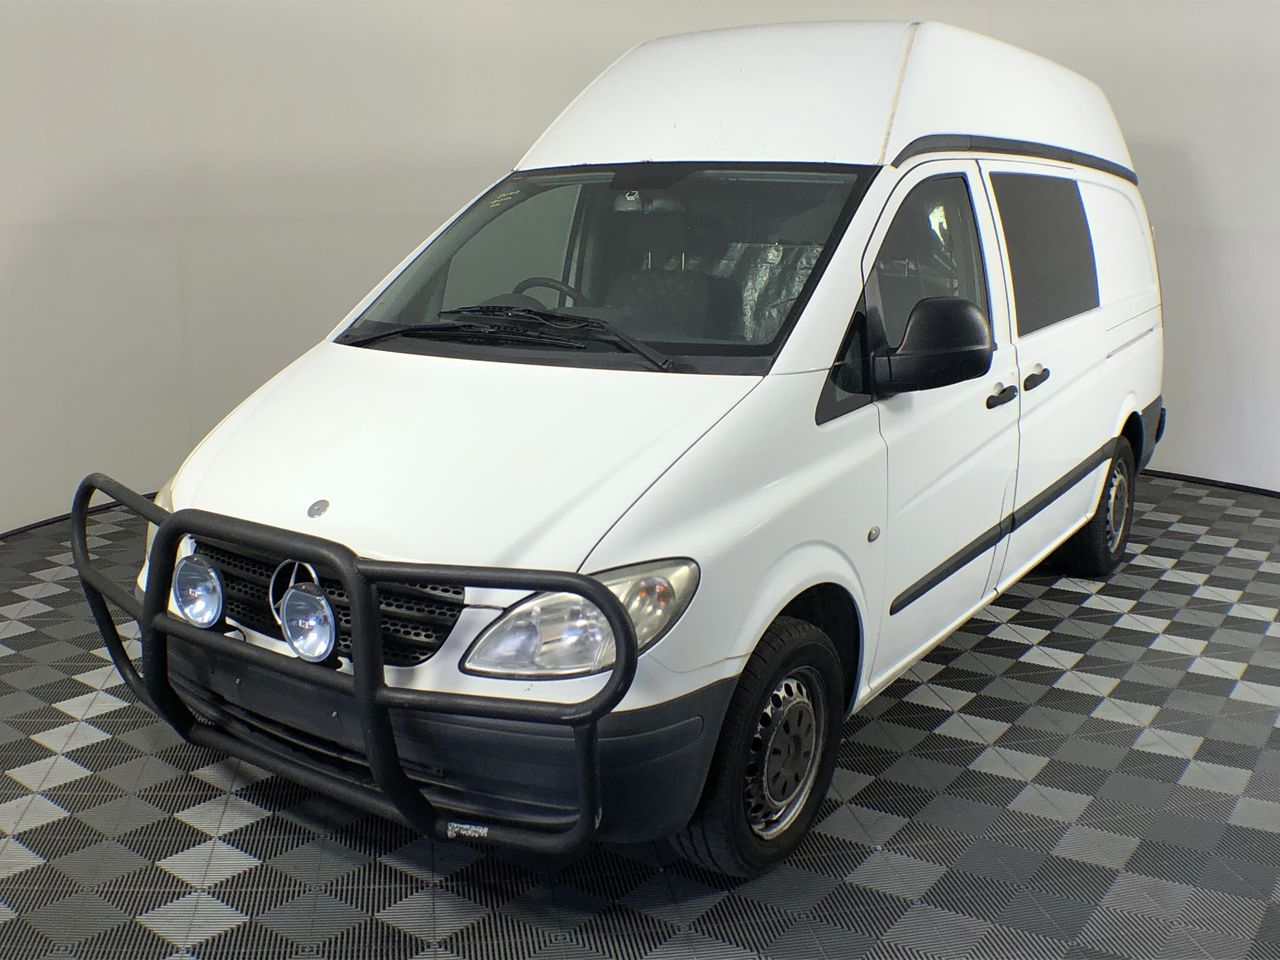 Mercedes Benz Vito 109CDI LONG HI-ROOF Turbo Diesel Manual Van